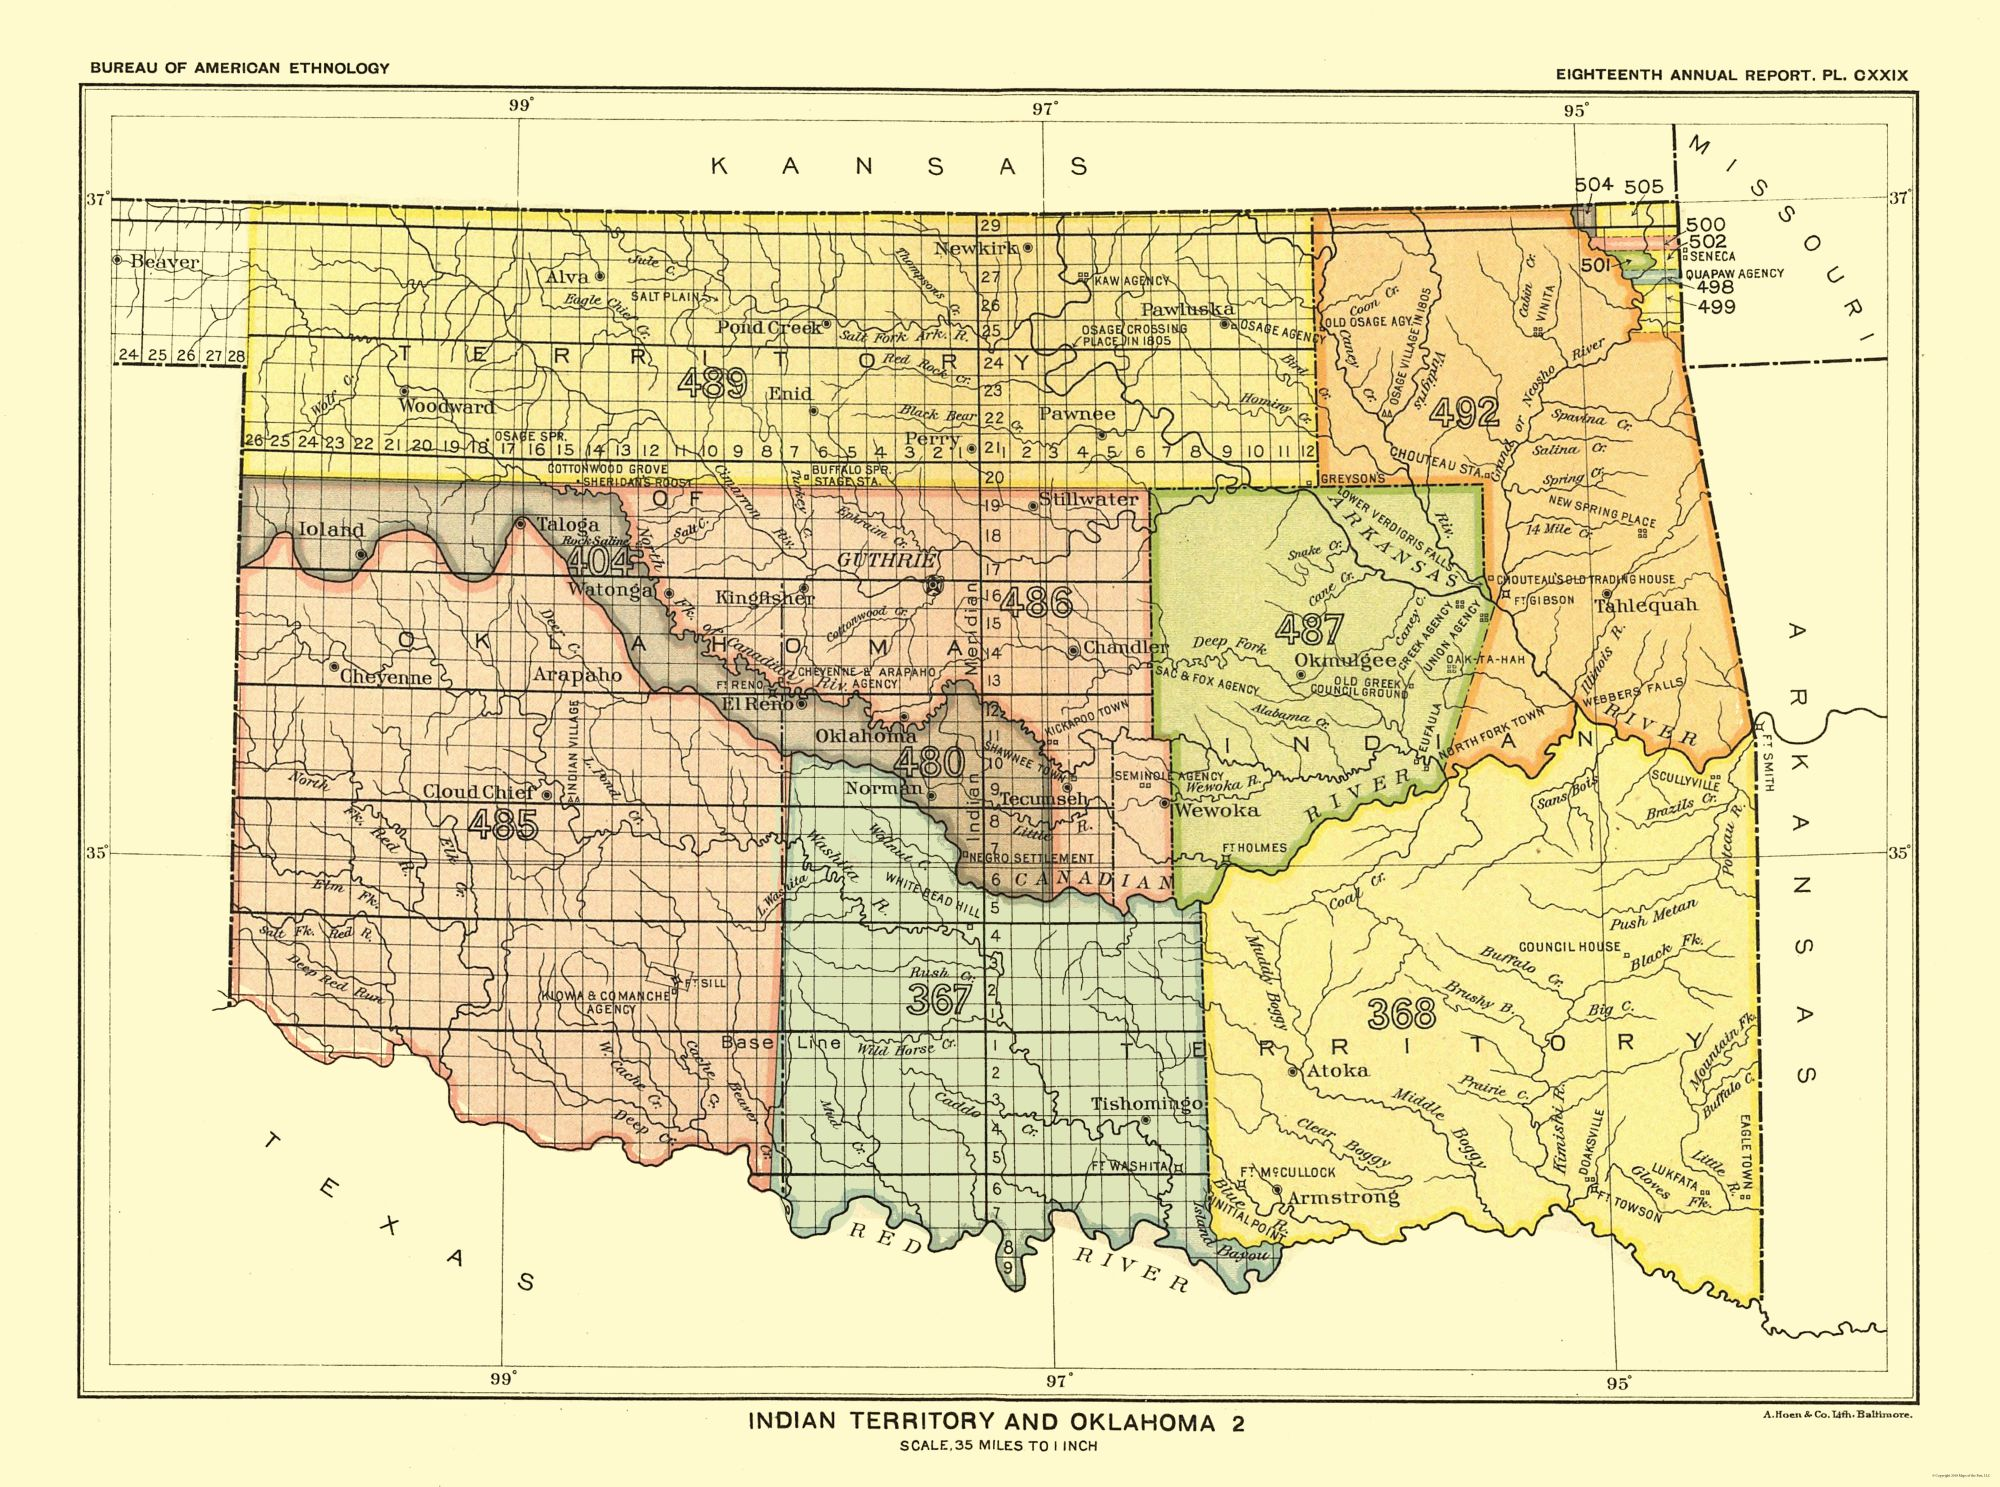 Old State Map - Indian Territory and Oklahoma - Hoen 1896 - 30.95 x on pull down map, zoomed in houston tx map, interactive world globe map, create a route map, ebola outbreak 2014 map, ancient world map, abu dhabi on world map, nasa digital world map, close up map, full screen usa map, pull up map, social media map, zanzibar world map, interactive us road map, large flat world map, search map, zermatt switzerland map, view map, silverlight virtual earth map, isis in map,